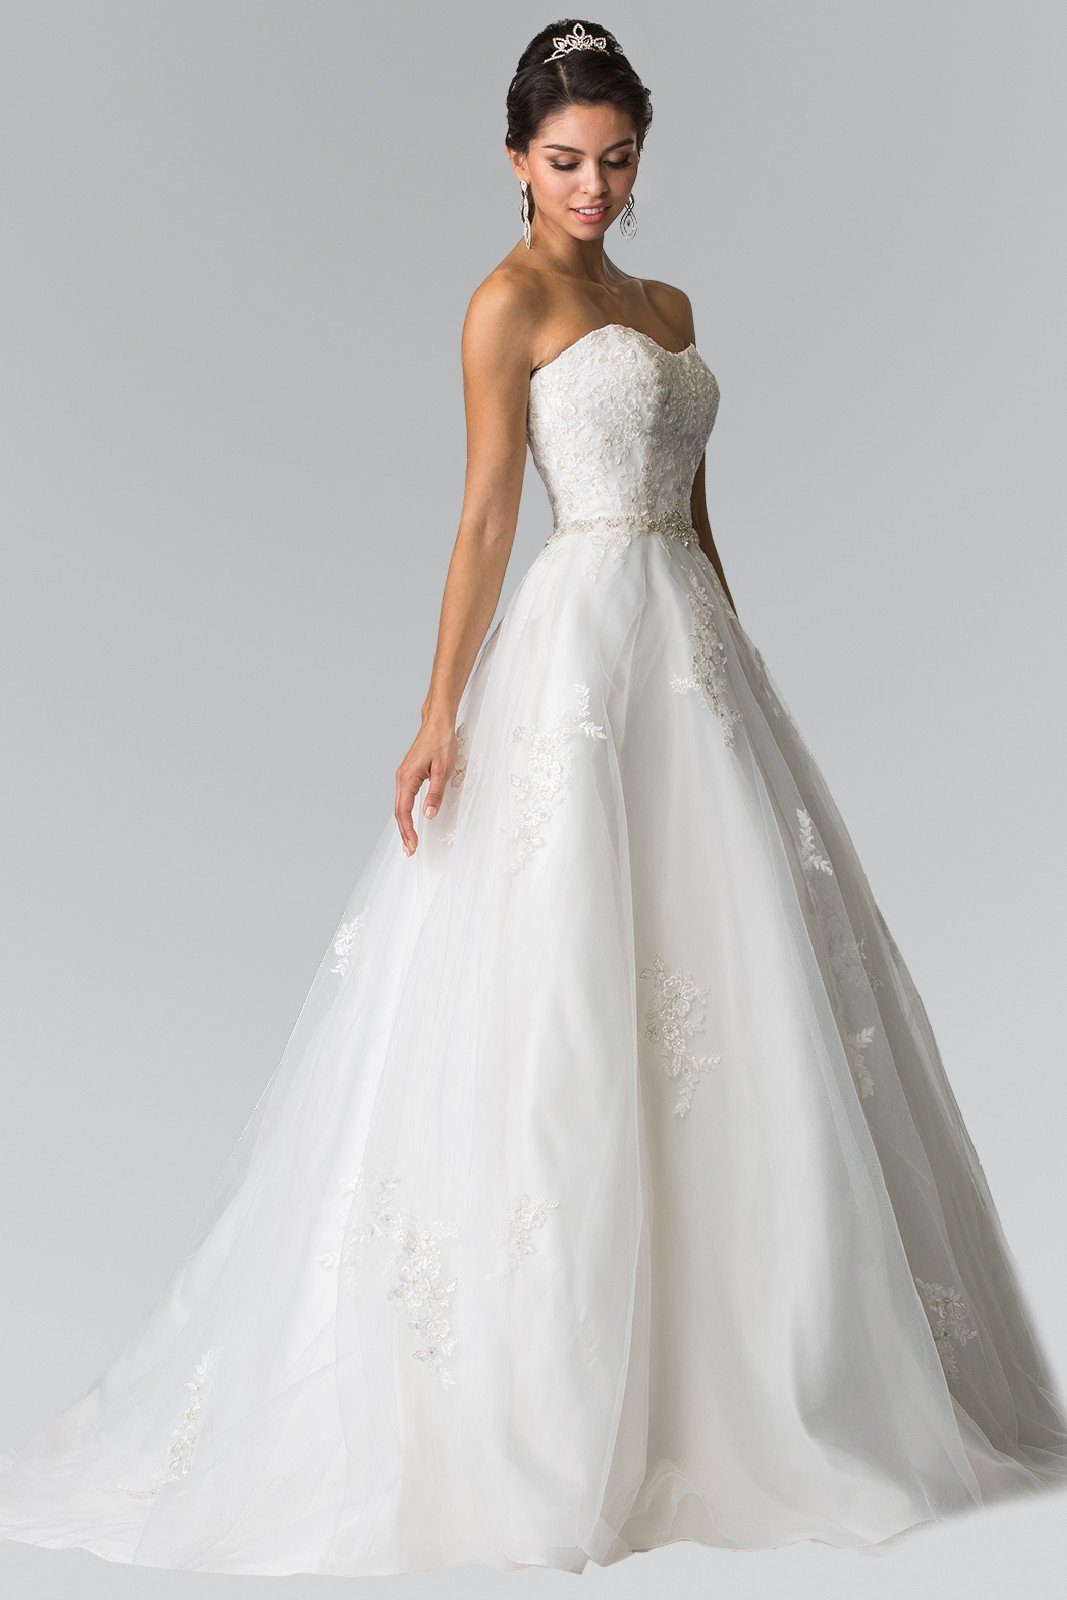 Ball Gown with Sweetheart Neckline Wedding Dress